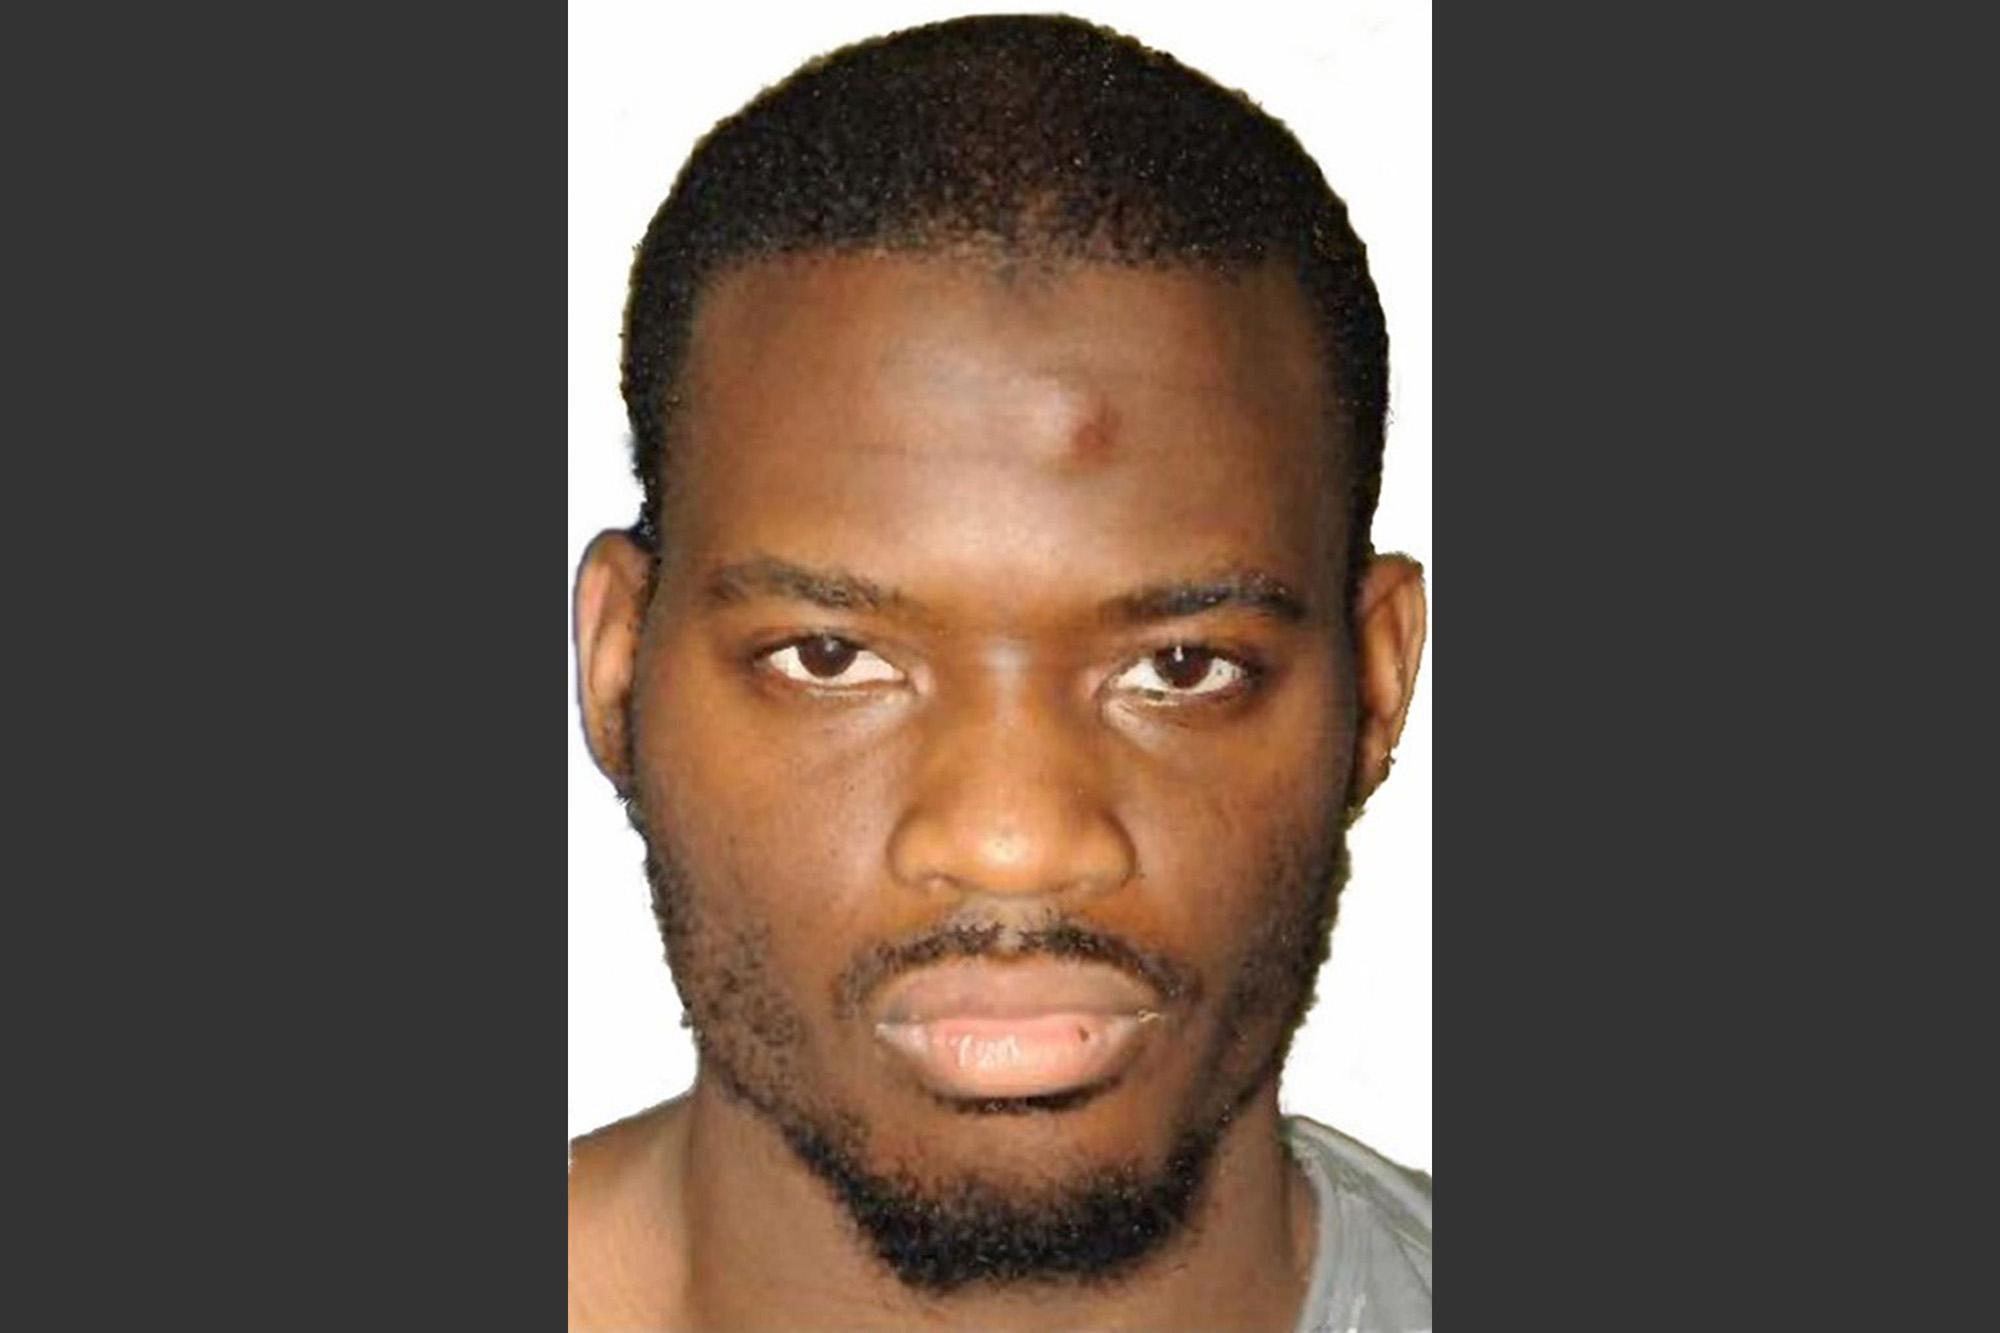 This undated file image released by the Metropolitan Police on Dec. 19, 2013 shows Michael Adebolajo.